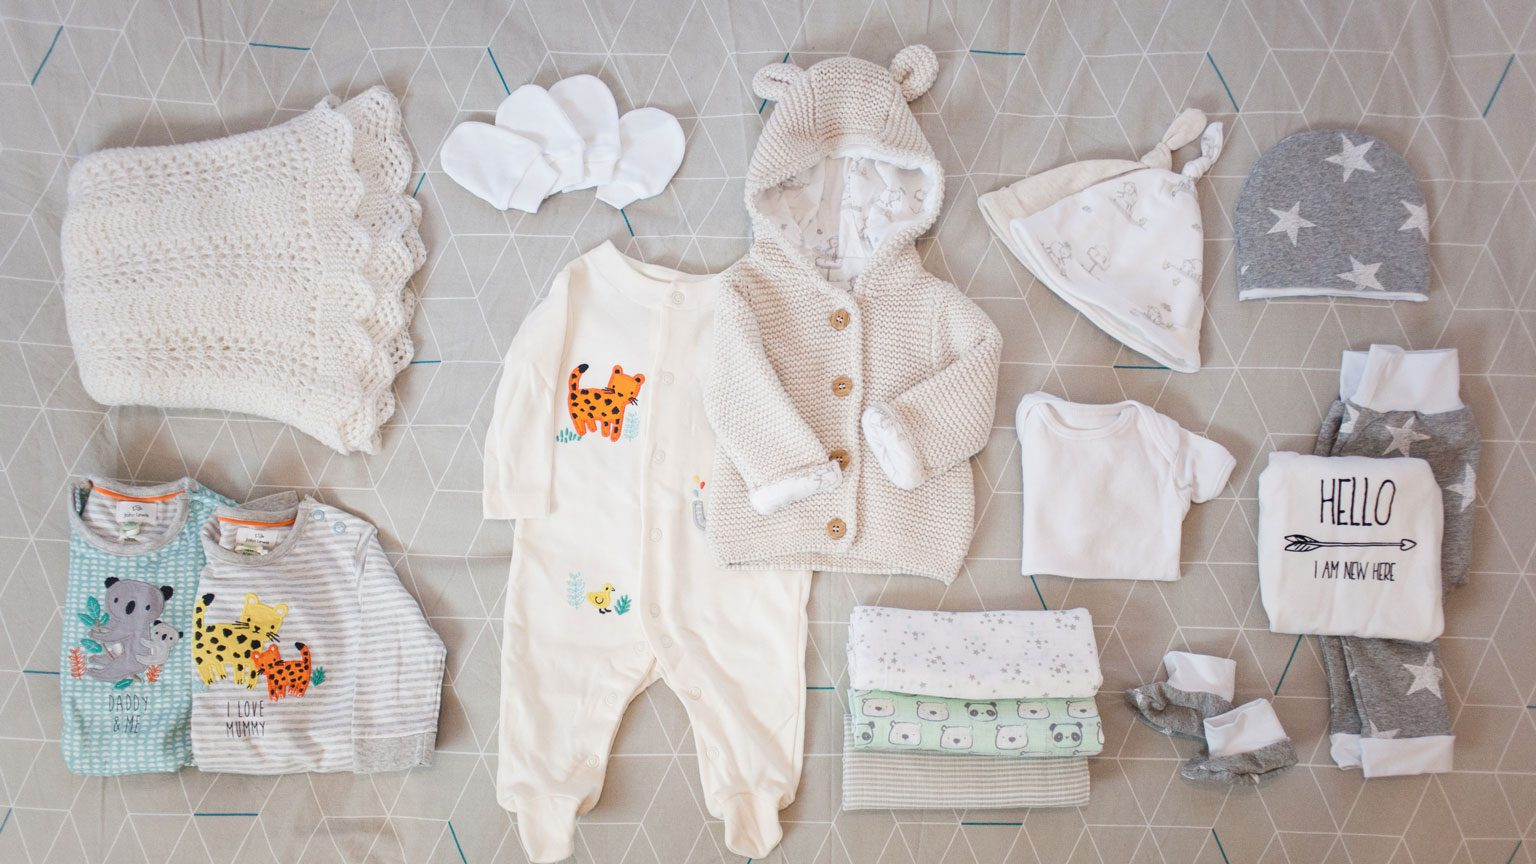 An example of some items new parents may pack in their hospital bag for the delivery of their new baby - blankets, clothes, muslins, scratch mittens, hats and booties.